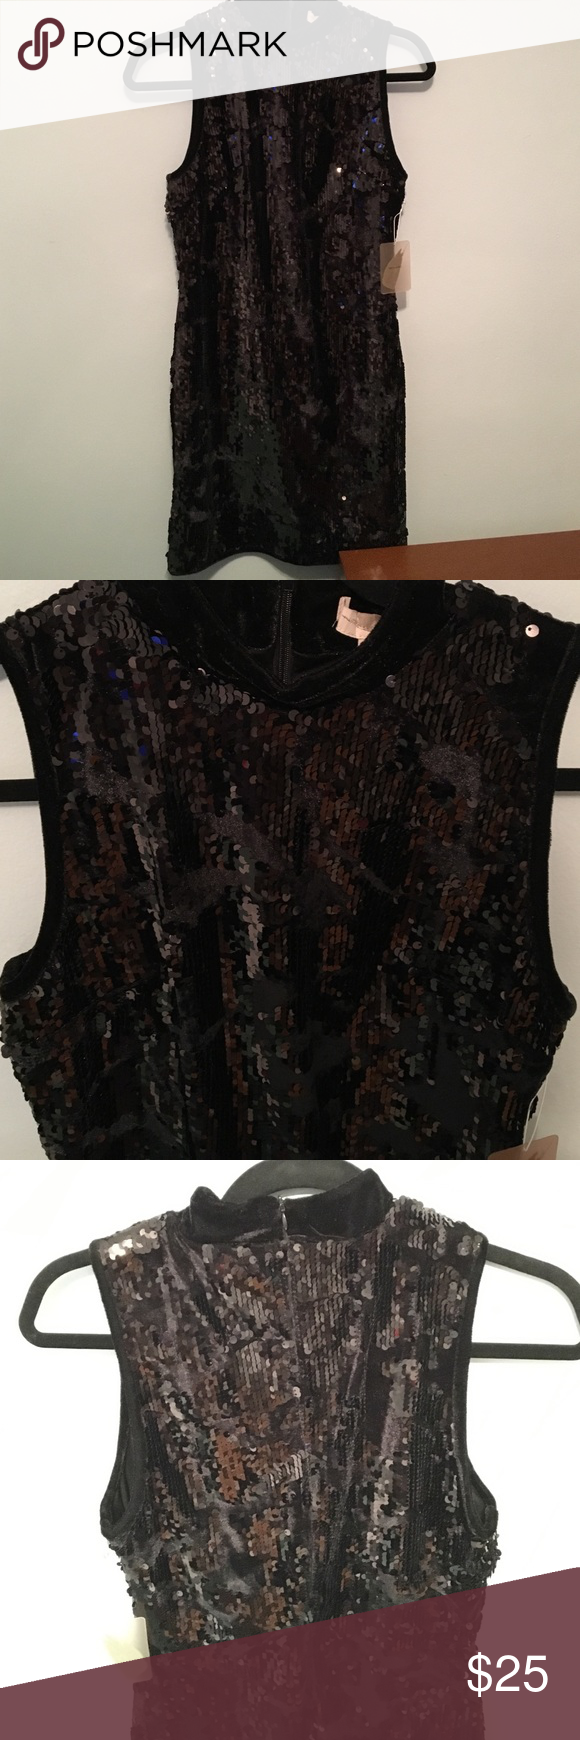 Sequined Velvet Dress NWT! New worn! Great for the holiday season. All sequins are intact Dresses Mini